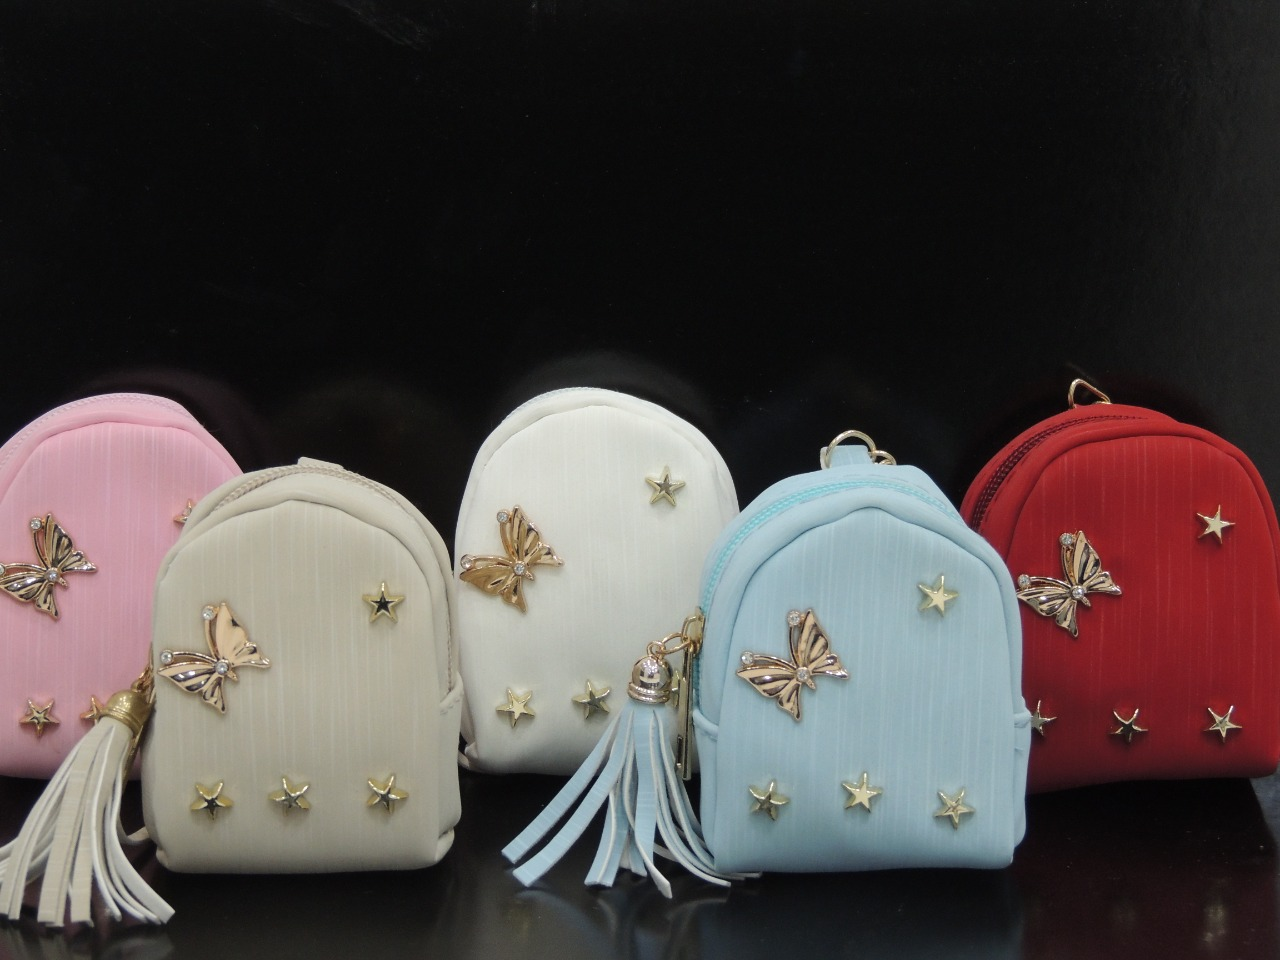 Women Coin Purse, Mini Pouch Change Wallet Card Holder with Key Ring: Buy  Online at Best Prices in Pakistan | Daraz.pk